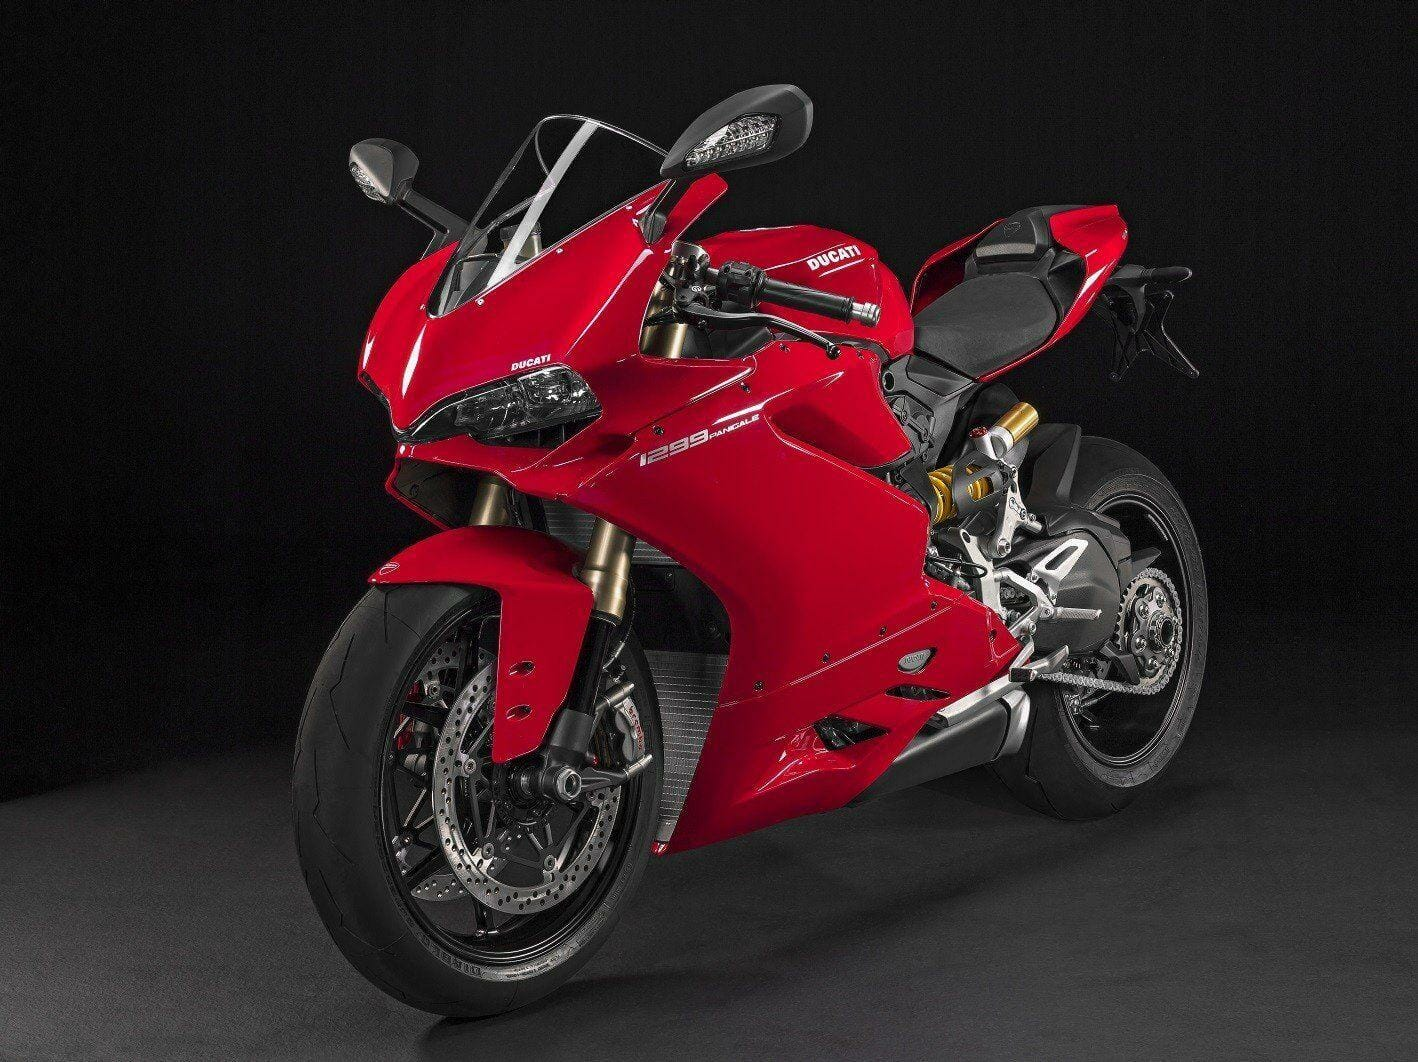 ducati panigale 1299, panigale 1299 s and panigale r from 2015